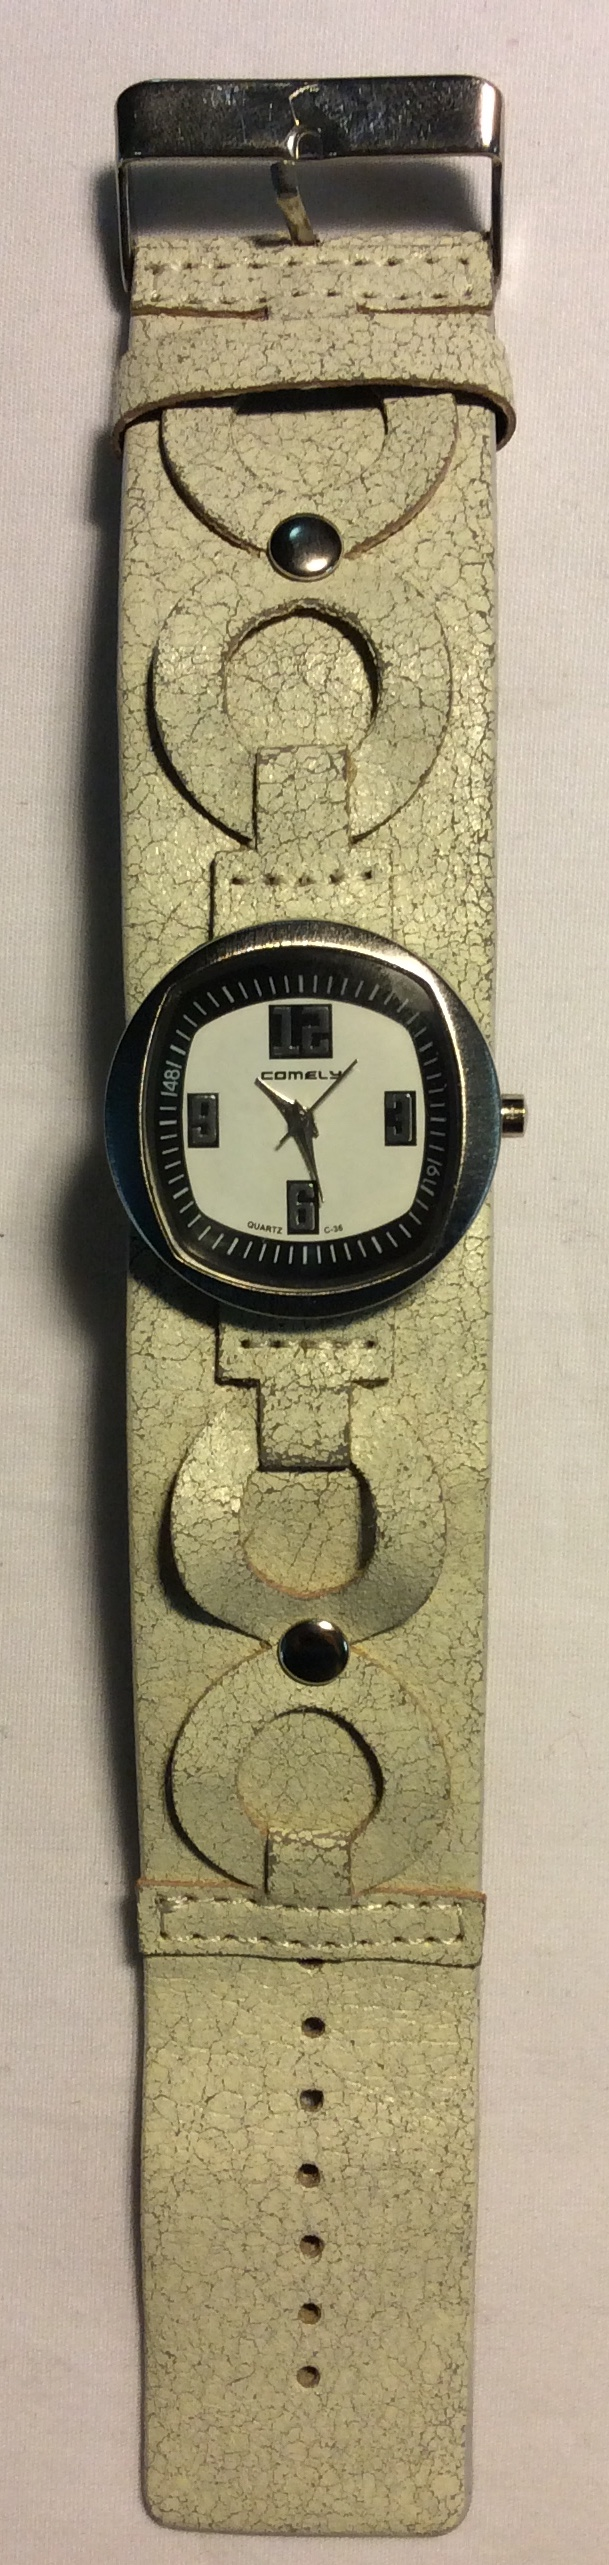 Comely watch - rounded square white